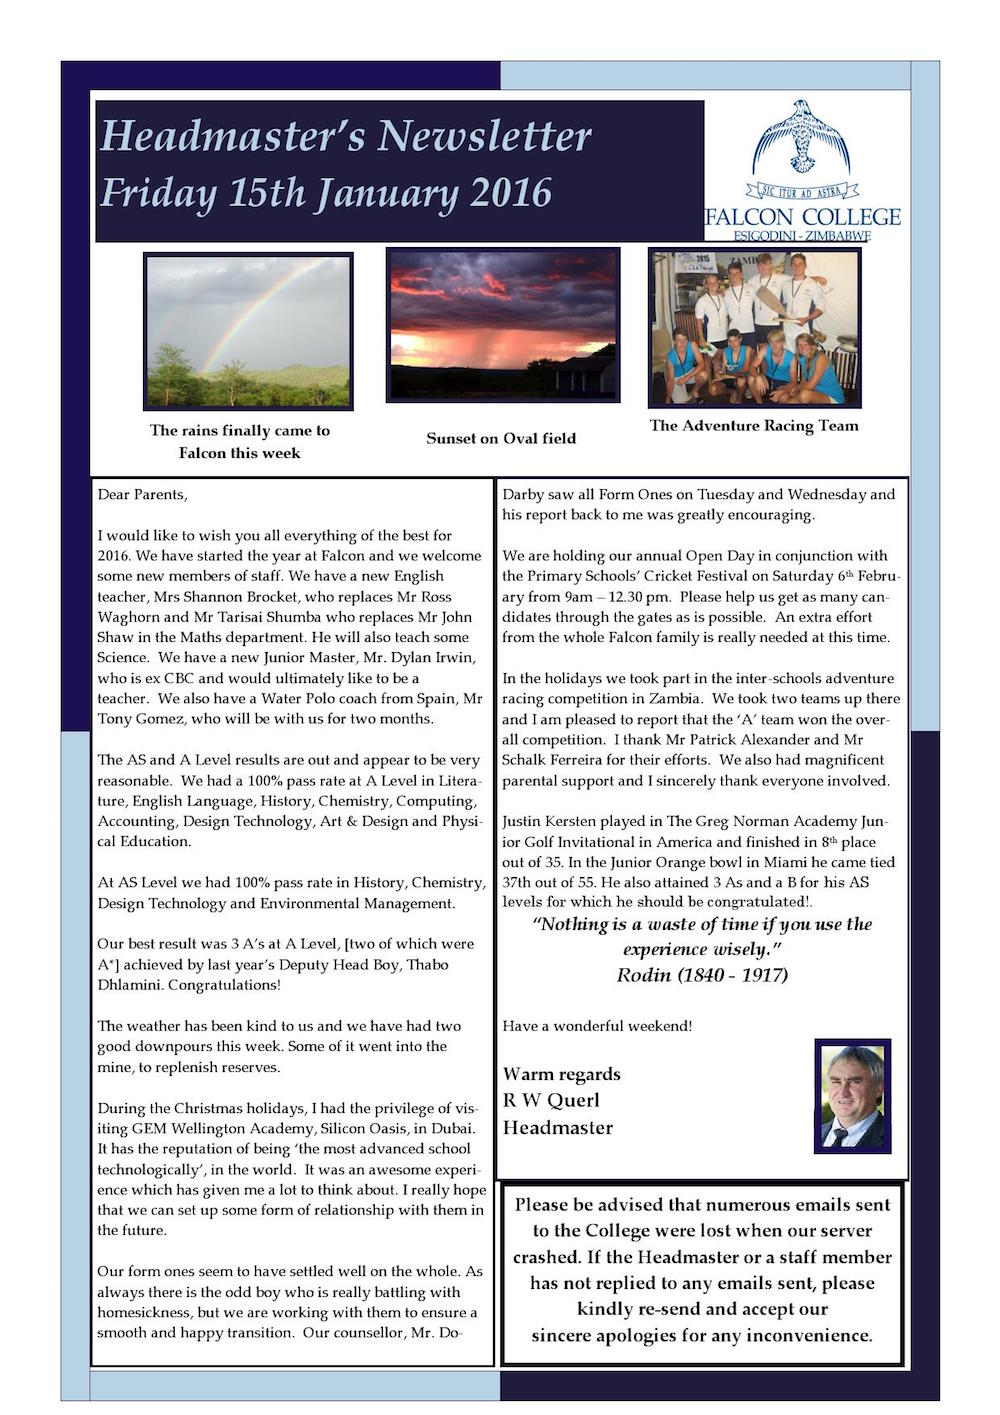 Headmaster's Newsletter Friday 14th January 2016edit_000001